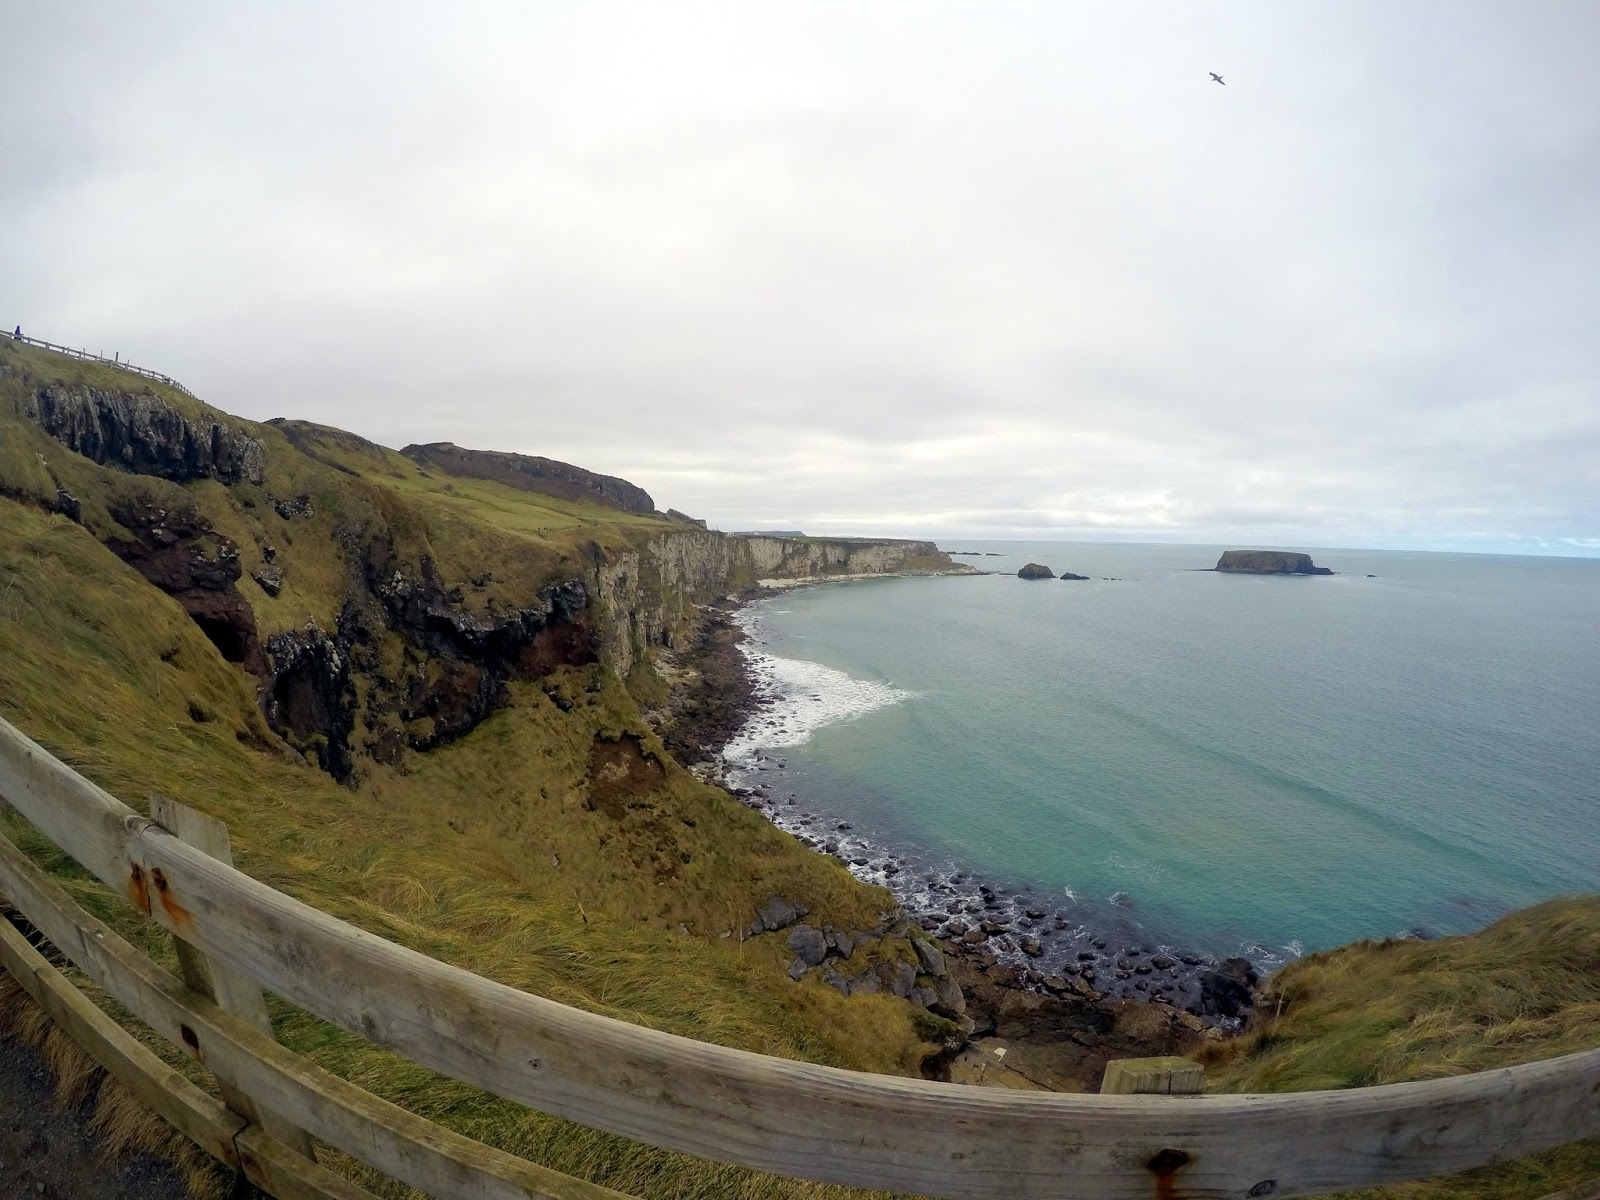 Carrick-a-rede, Carrick a rede, ropebridge, scary, Northern Ireland, Ulster, Antrim, Antrim coast, Causeway coast, Giant's Causeway, Adventure, what to do in Northern Ireland, How to get to carrick a rede, amazing scenery, beautiful, views